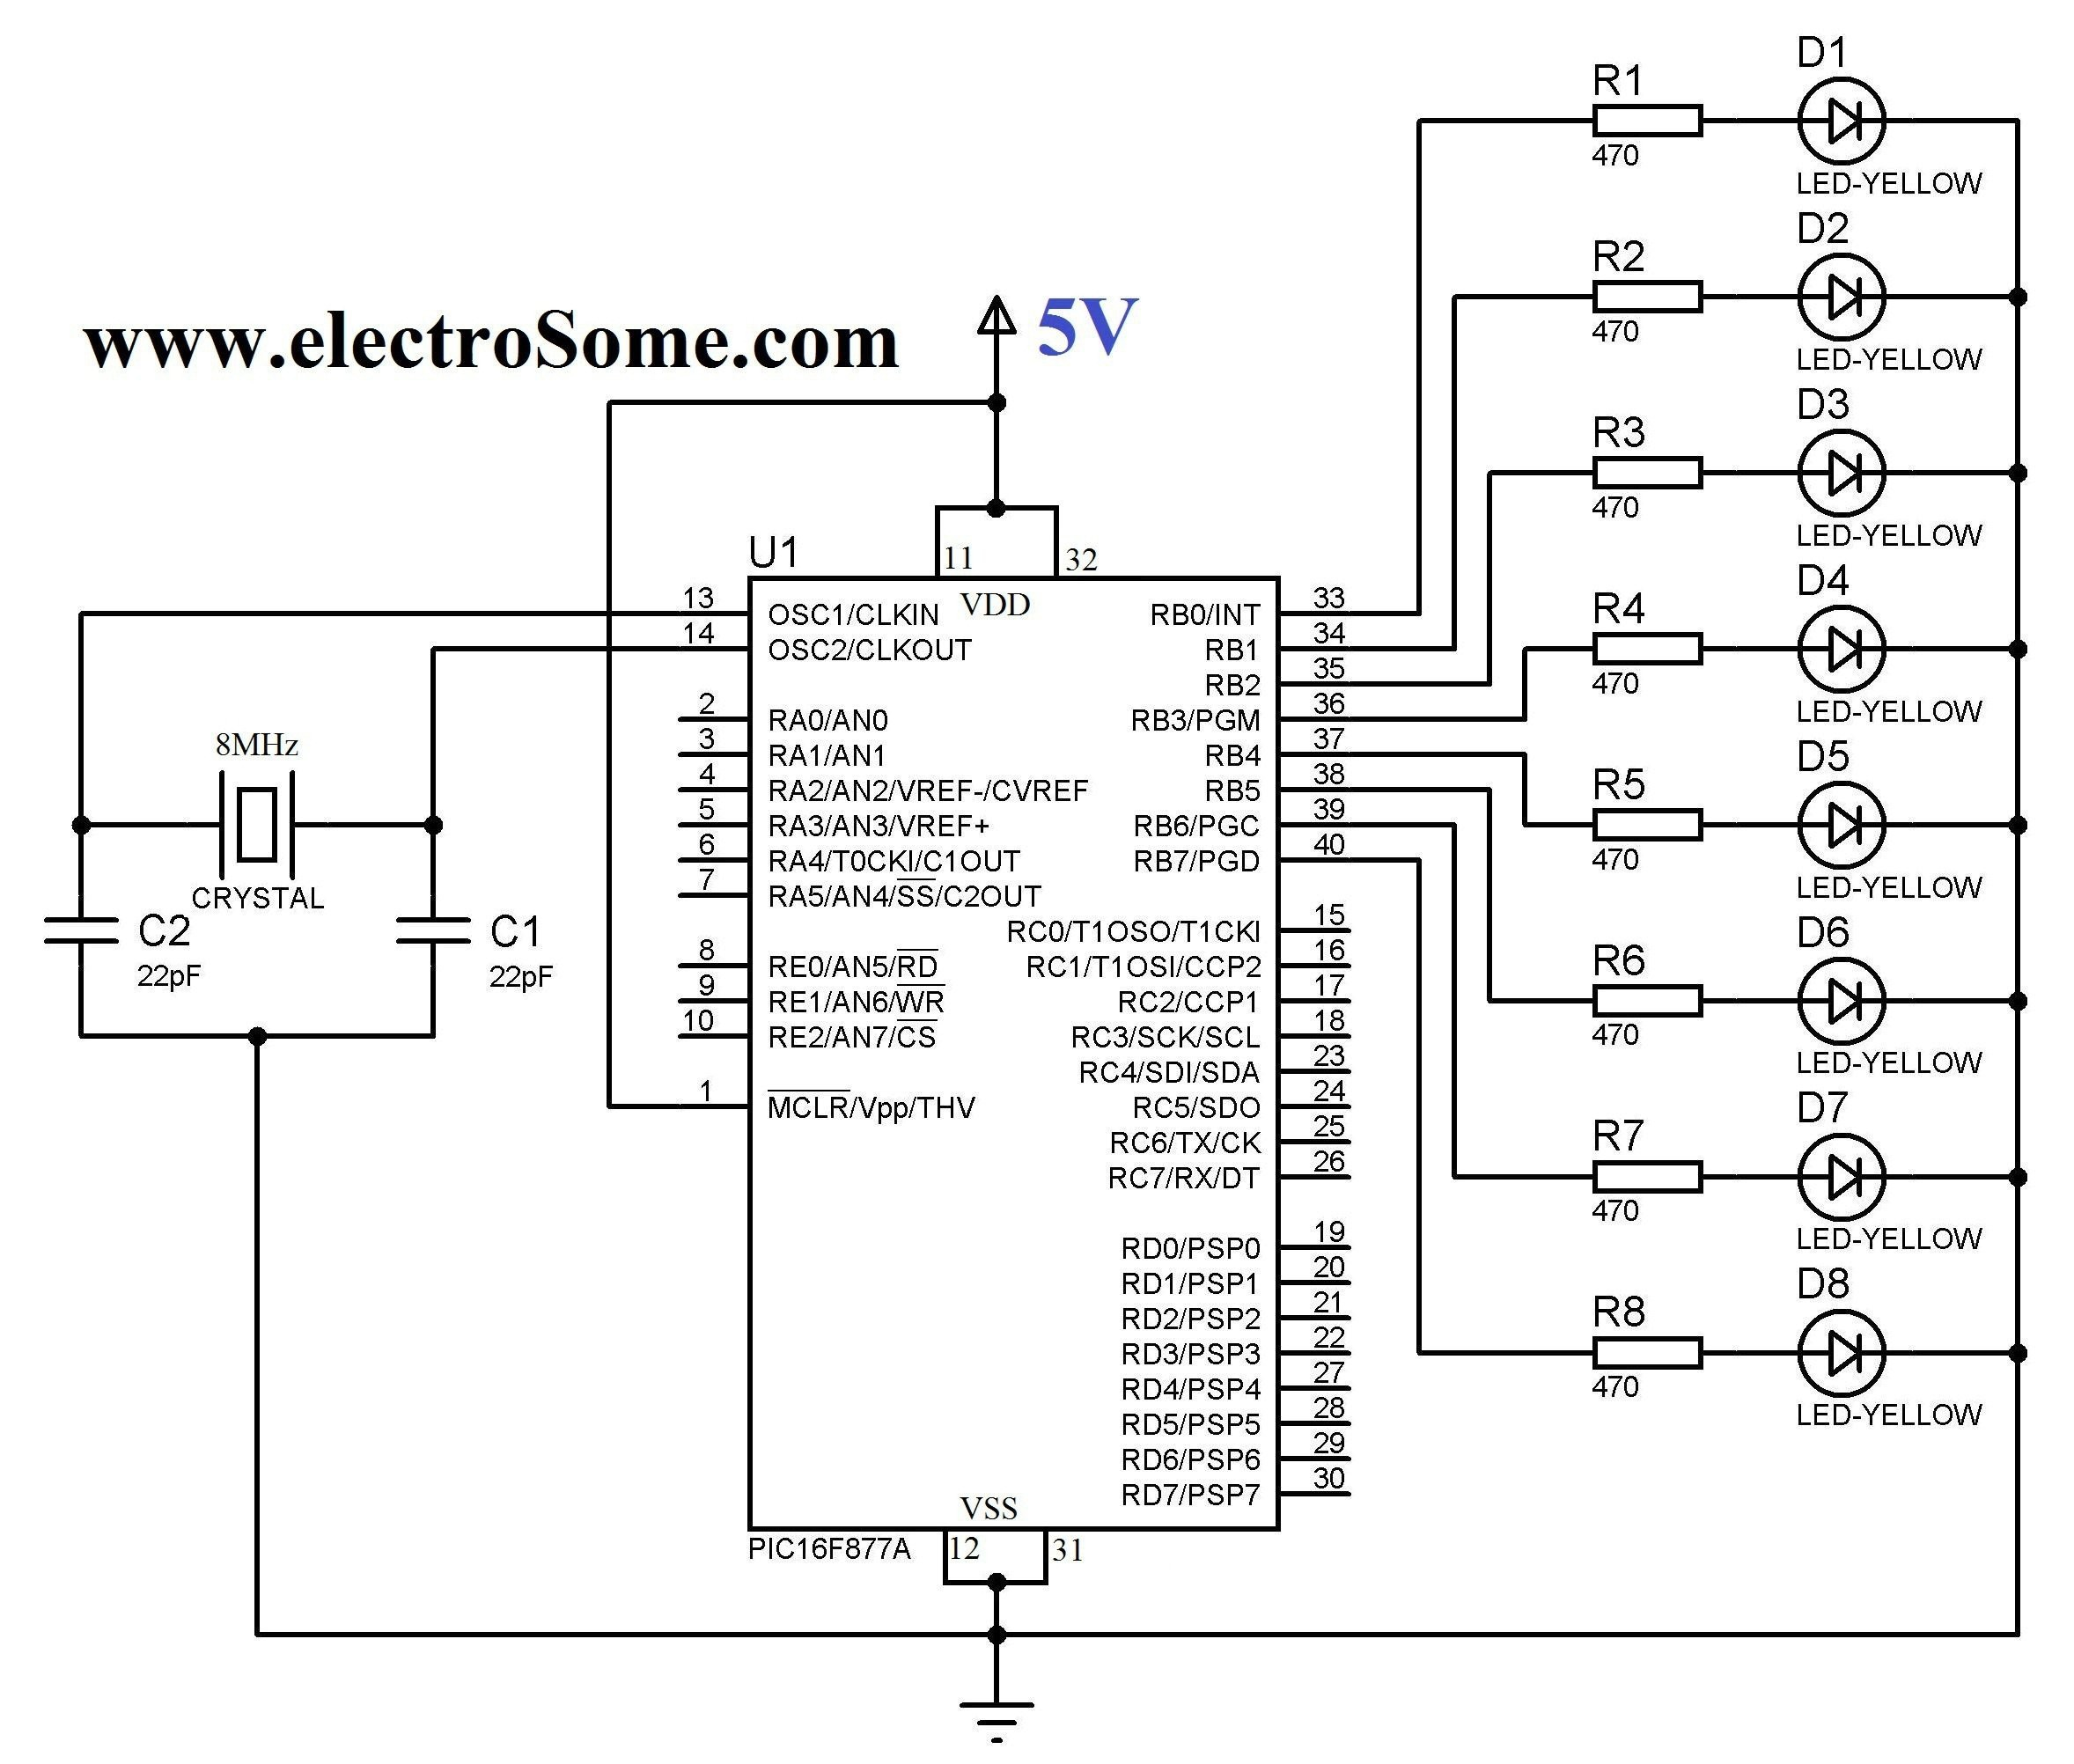 Led driver wiring diagram new led driver circuit diagram diagram led driver wiring diagram new led driver circuit diagram diagram of led driver wiring diagram new cheapraybanclubmaster Gallery